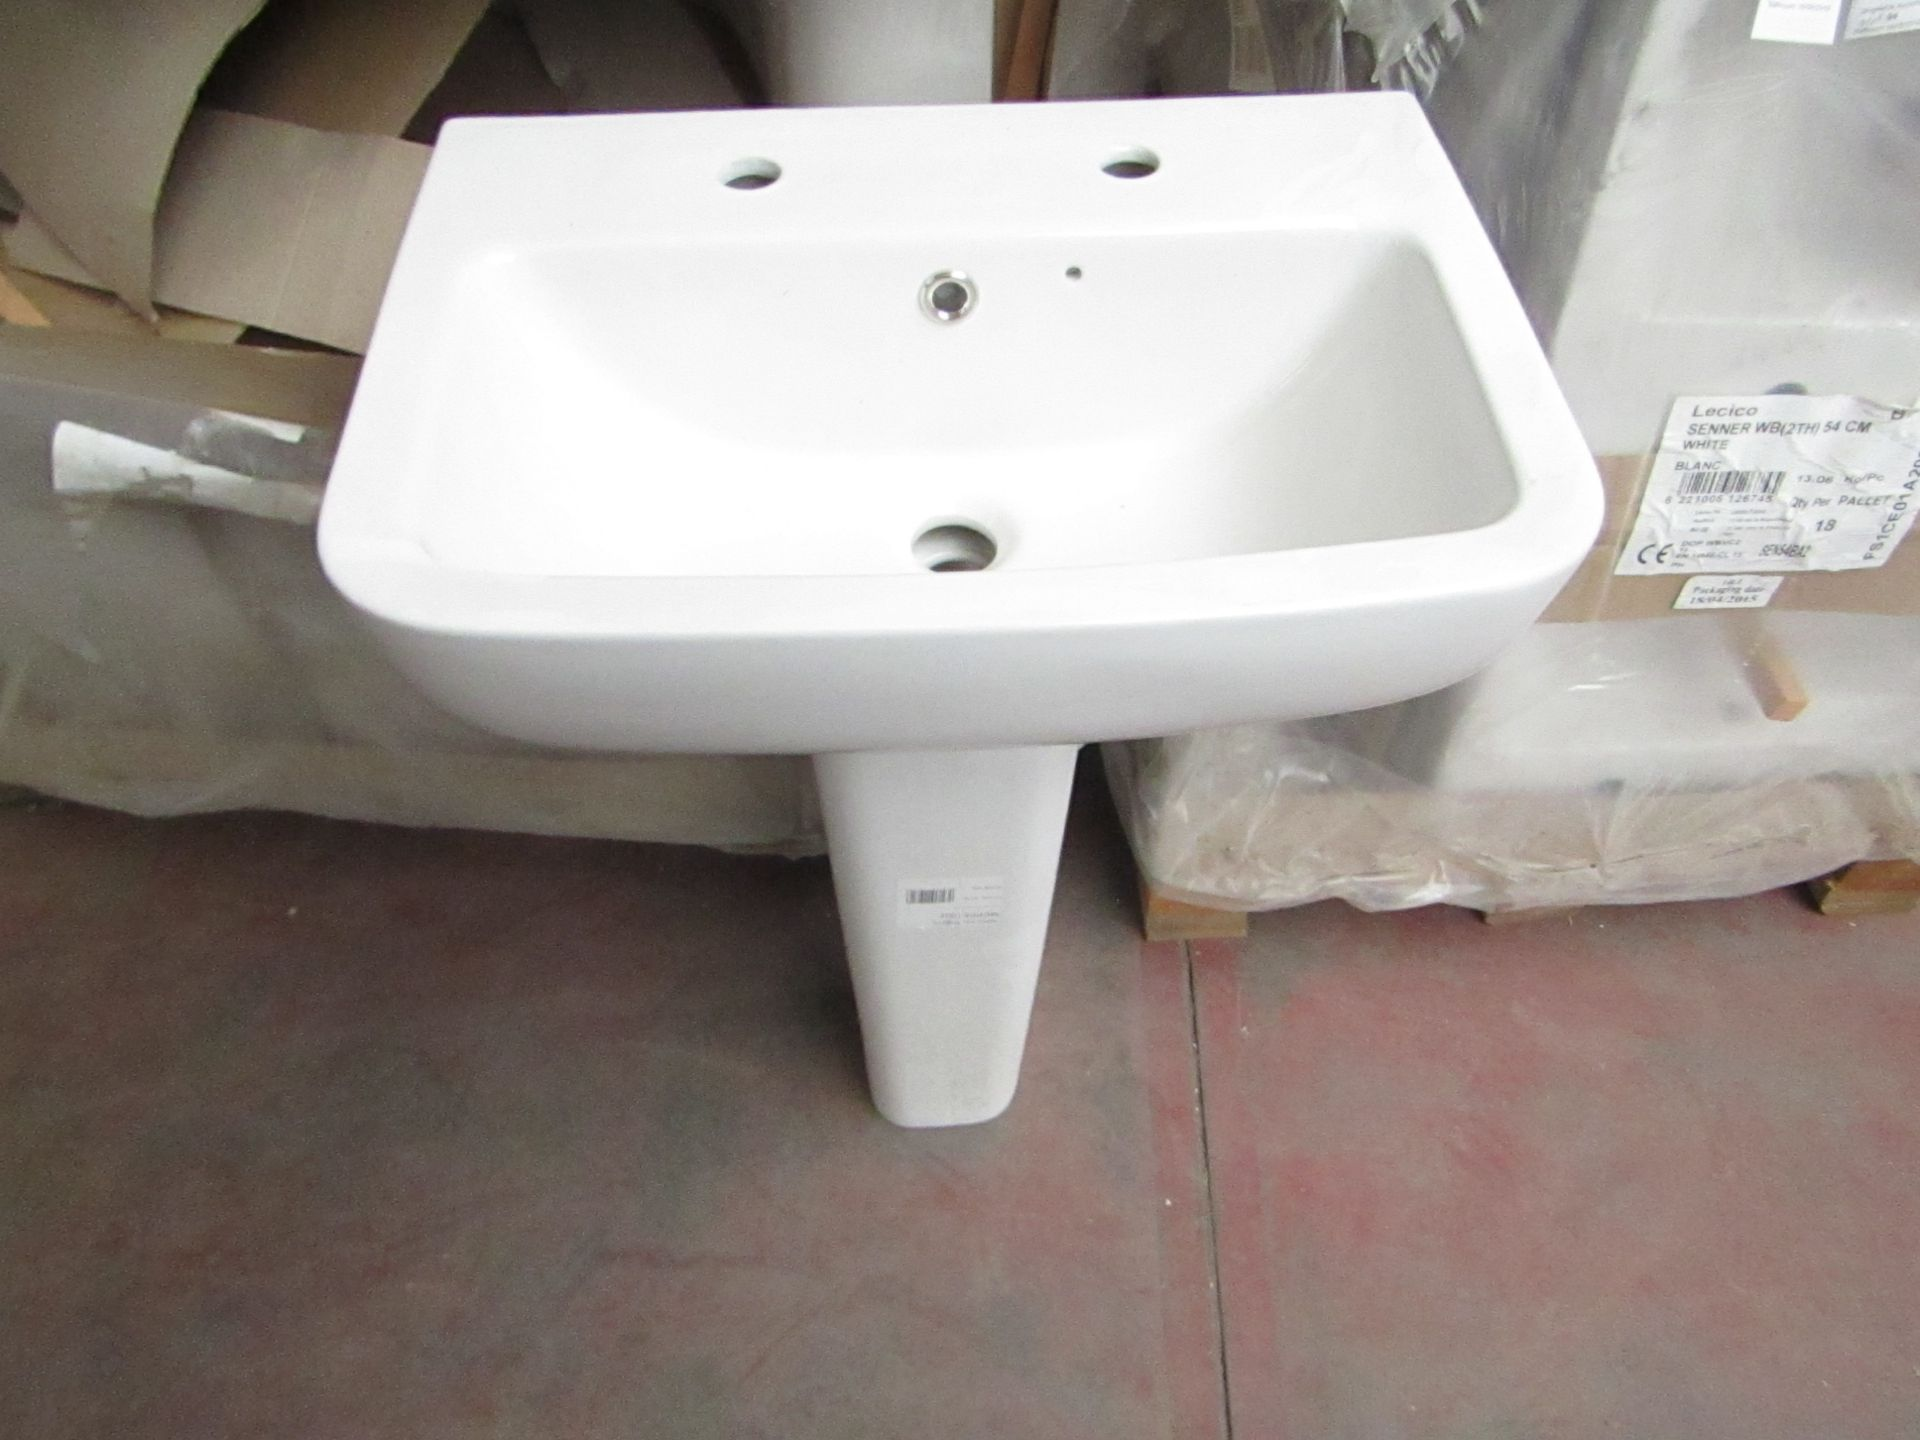 Lecico Senner 2 tap hole basin 54cm with neroli full pedestal that appears to fit the basin, unused